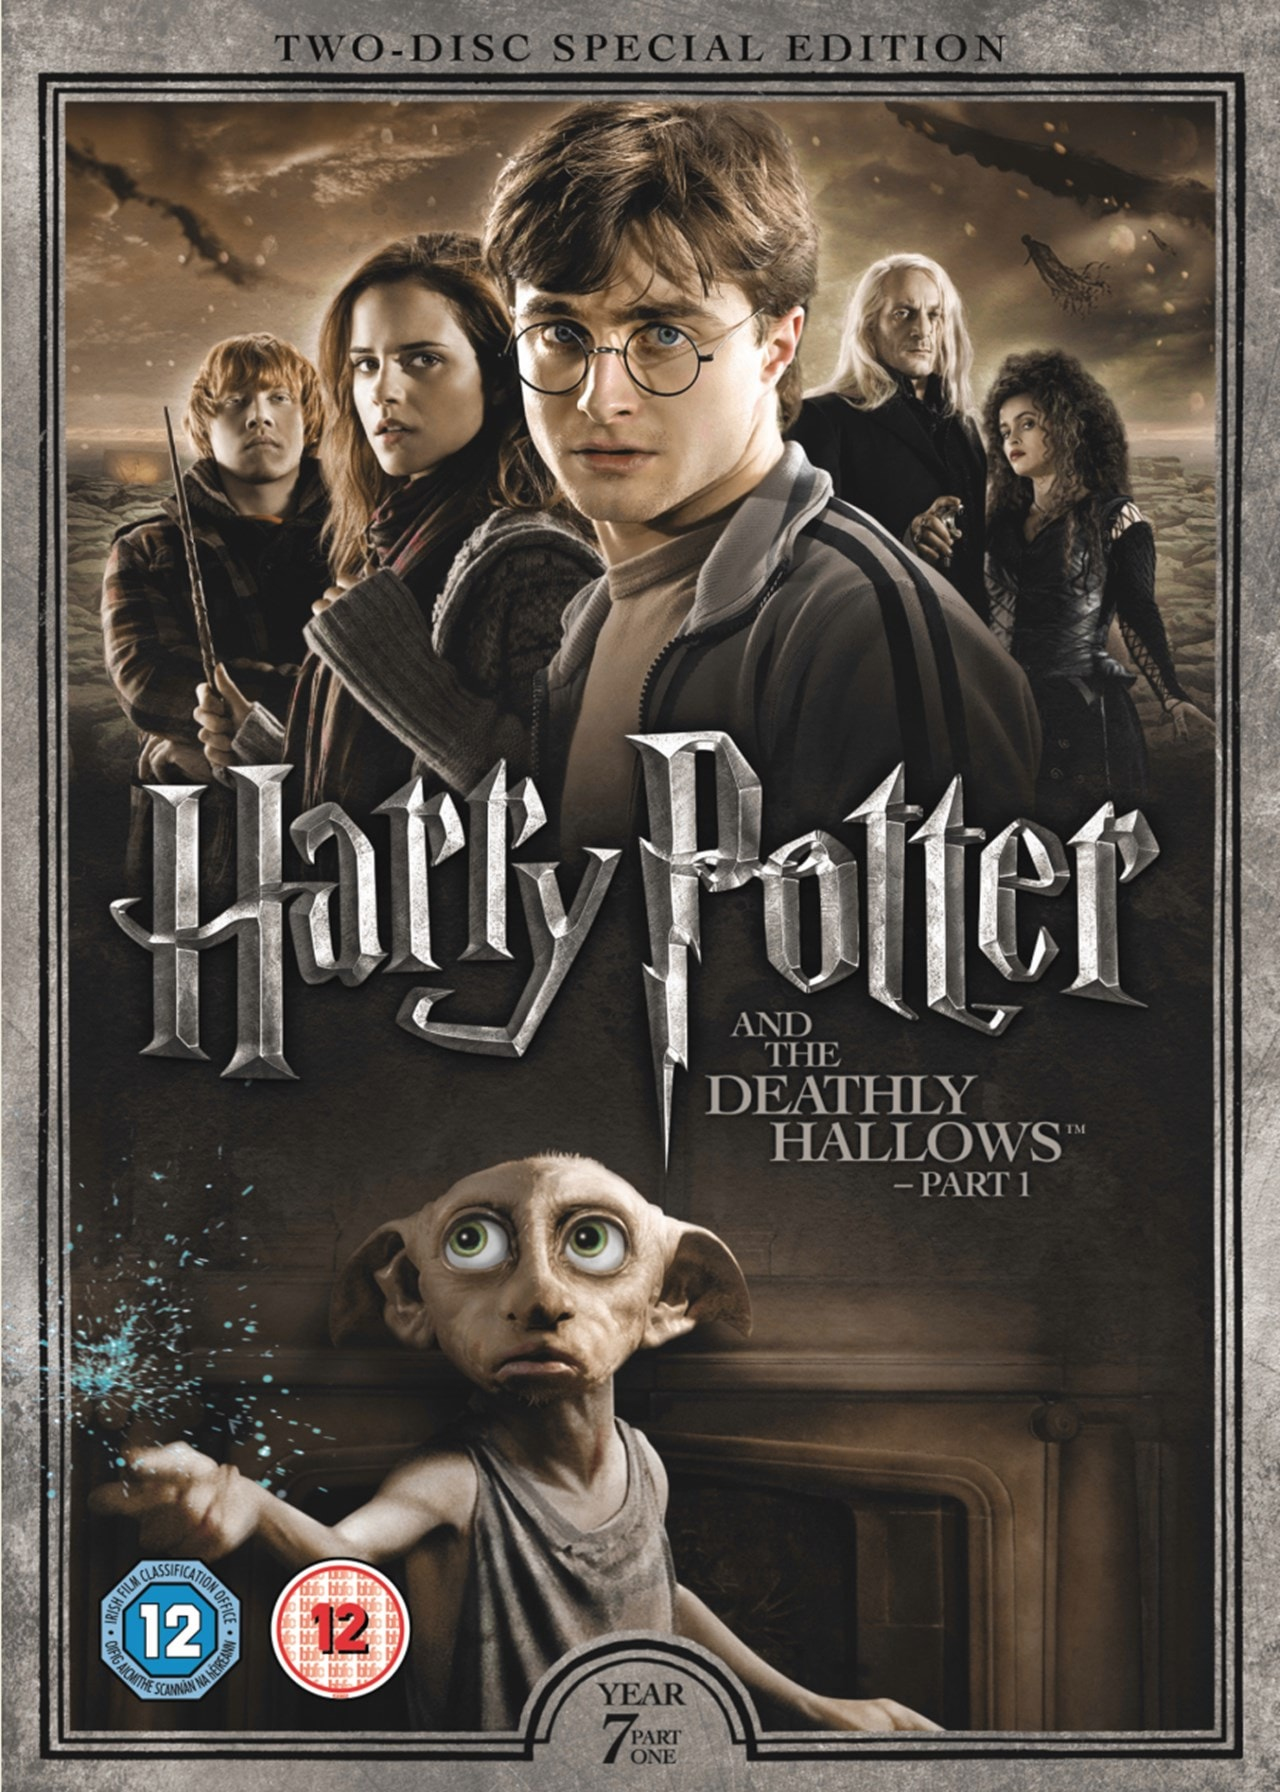 Harry Potter and the Deathly Hallows: Part 1 - 1